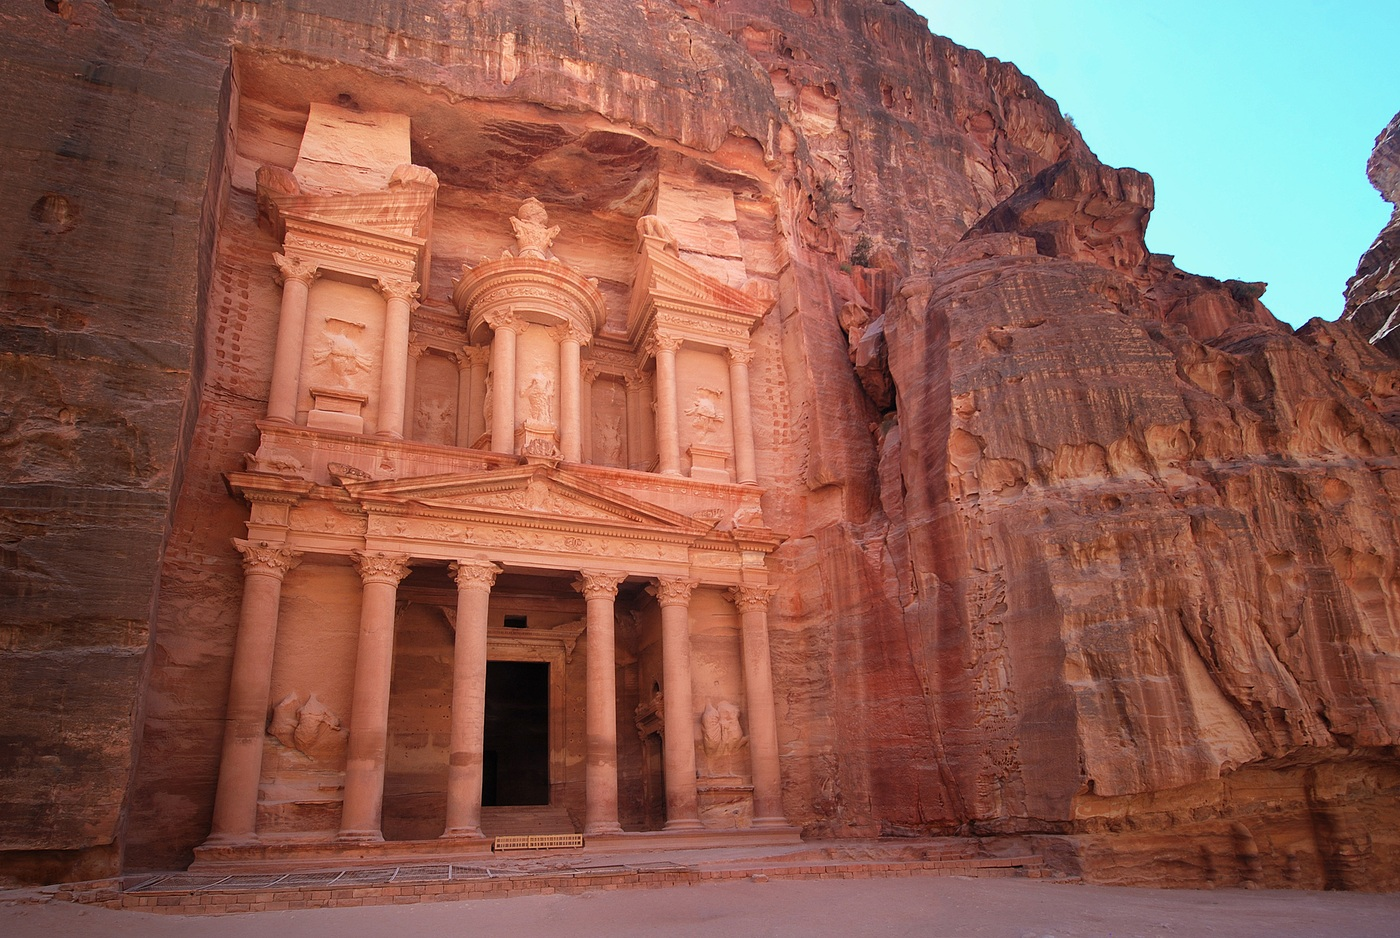 Jordan's Lost city 20 travel bucket list ideas to do before 40 20 Travel Bucket List Ideas To do before 40 jordans lost city 674b